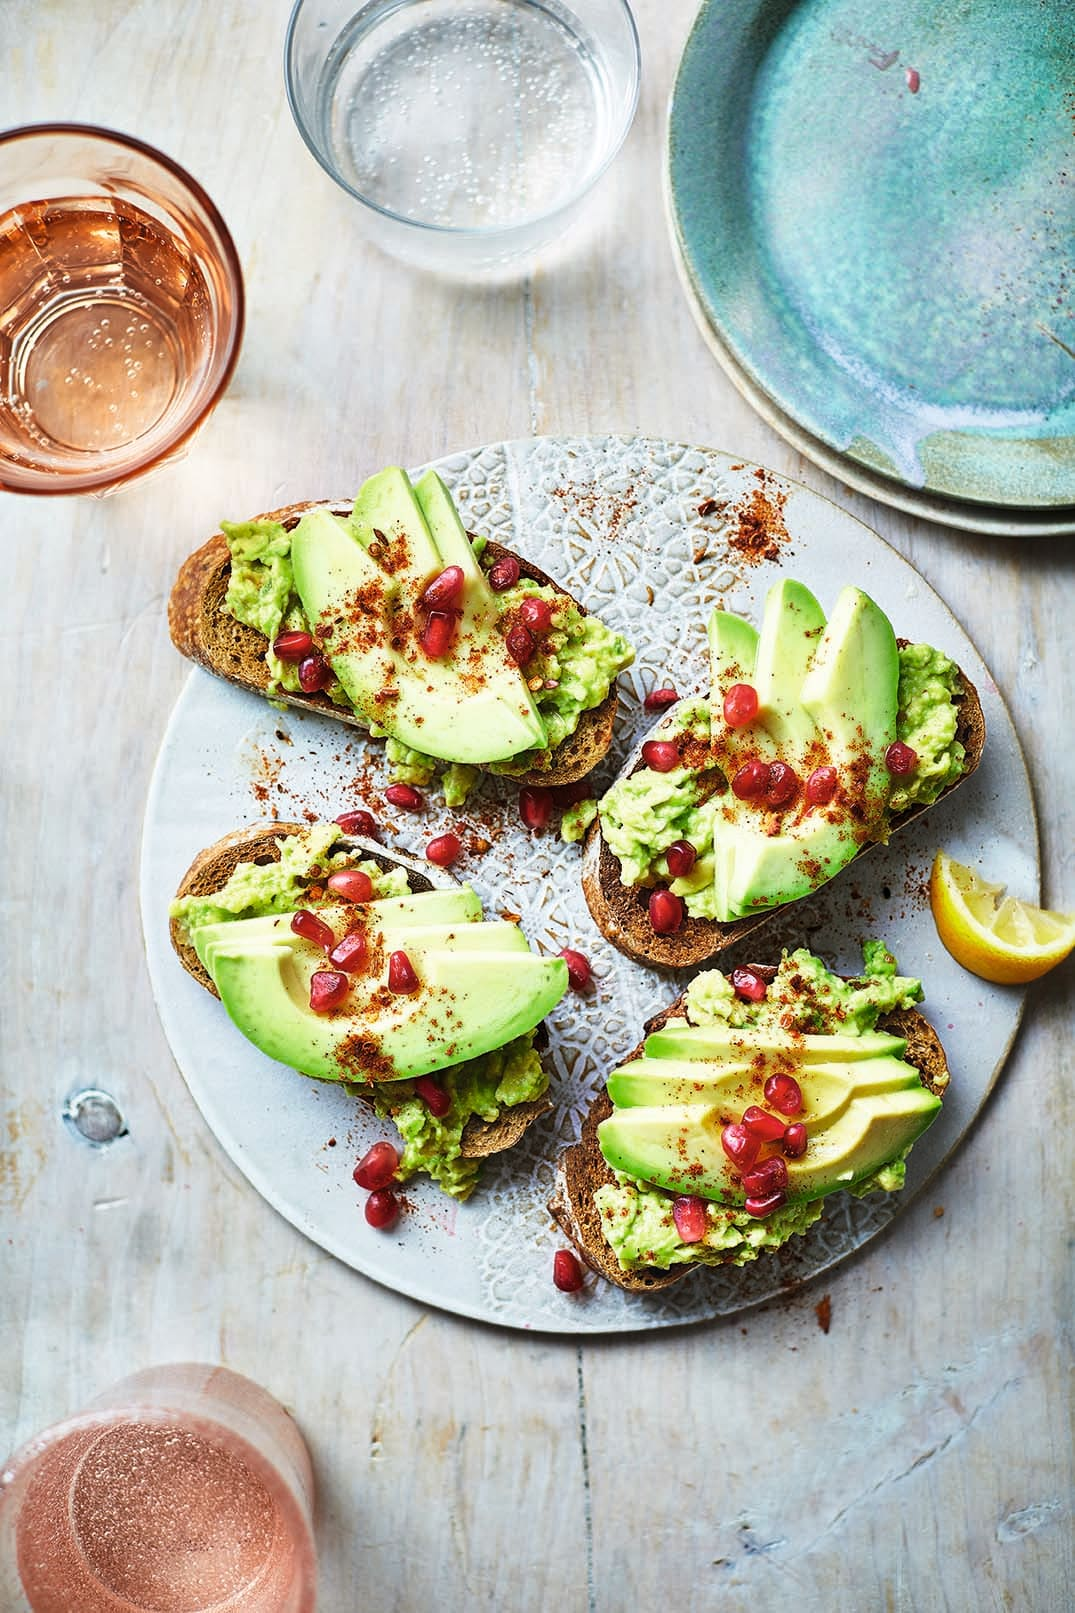 Photo of Moroccan-style avocado on toast by WW